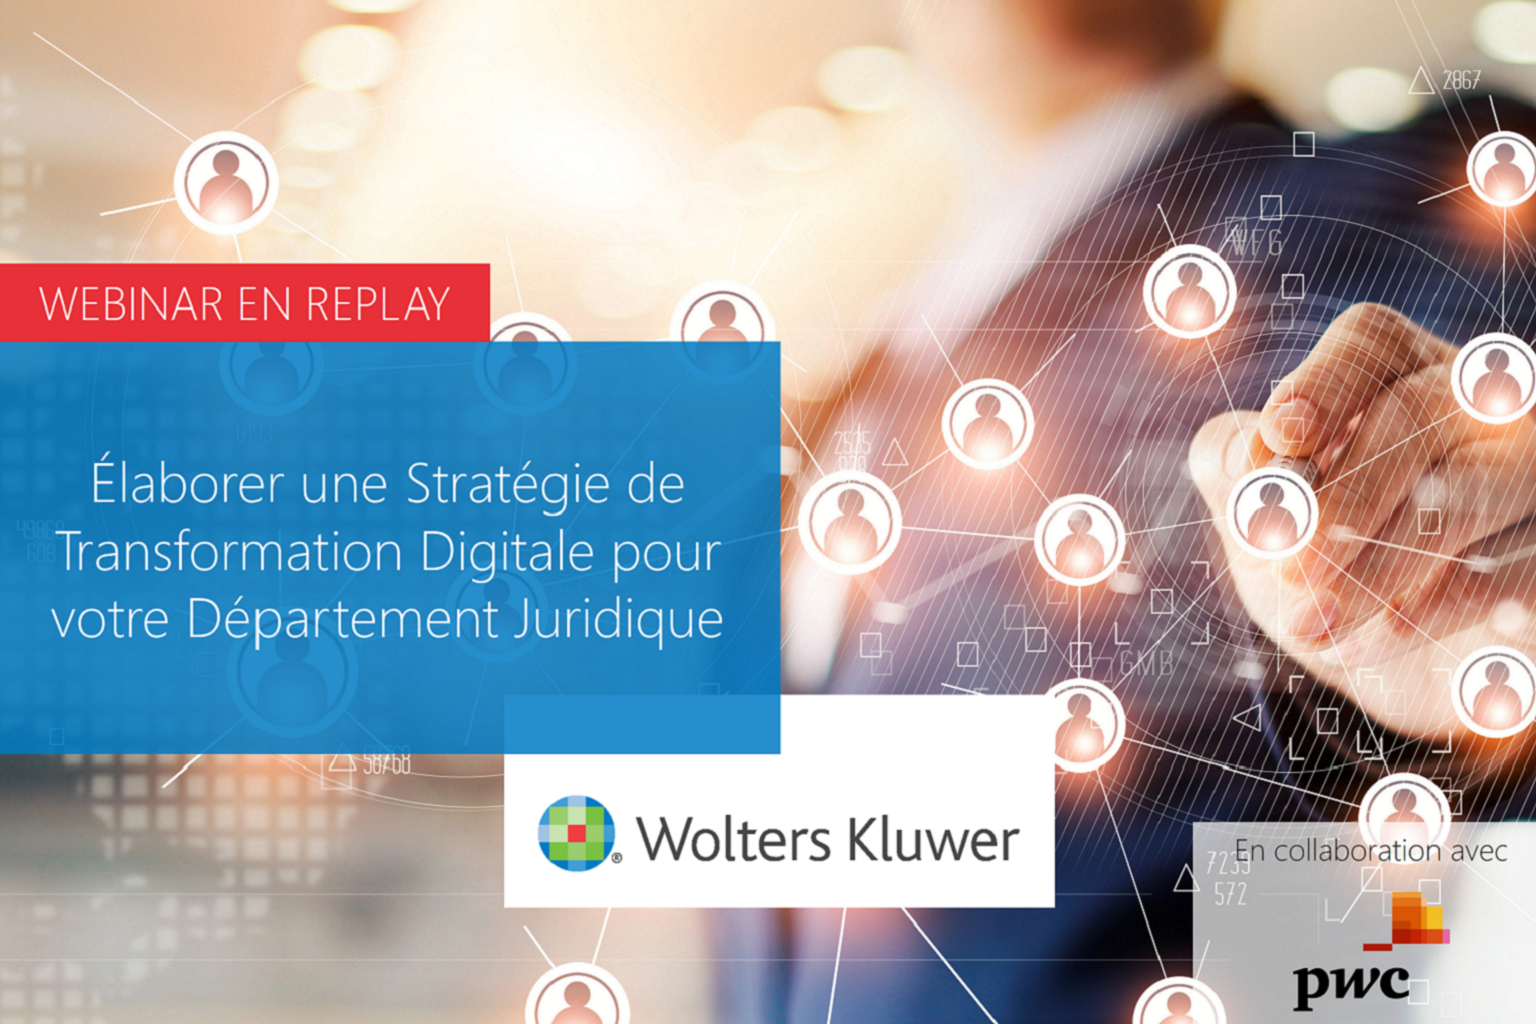 Screenshot-fr-webinar-elaborer-une-strategie-ondemand